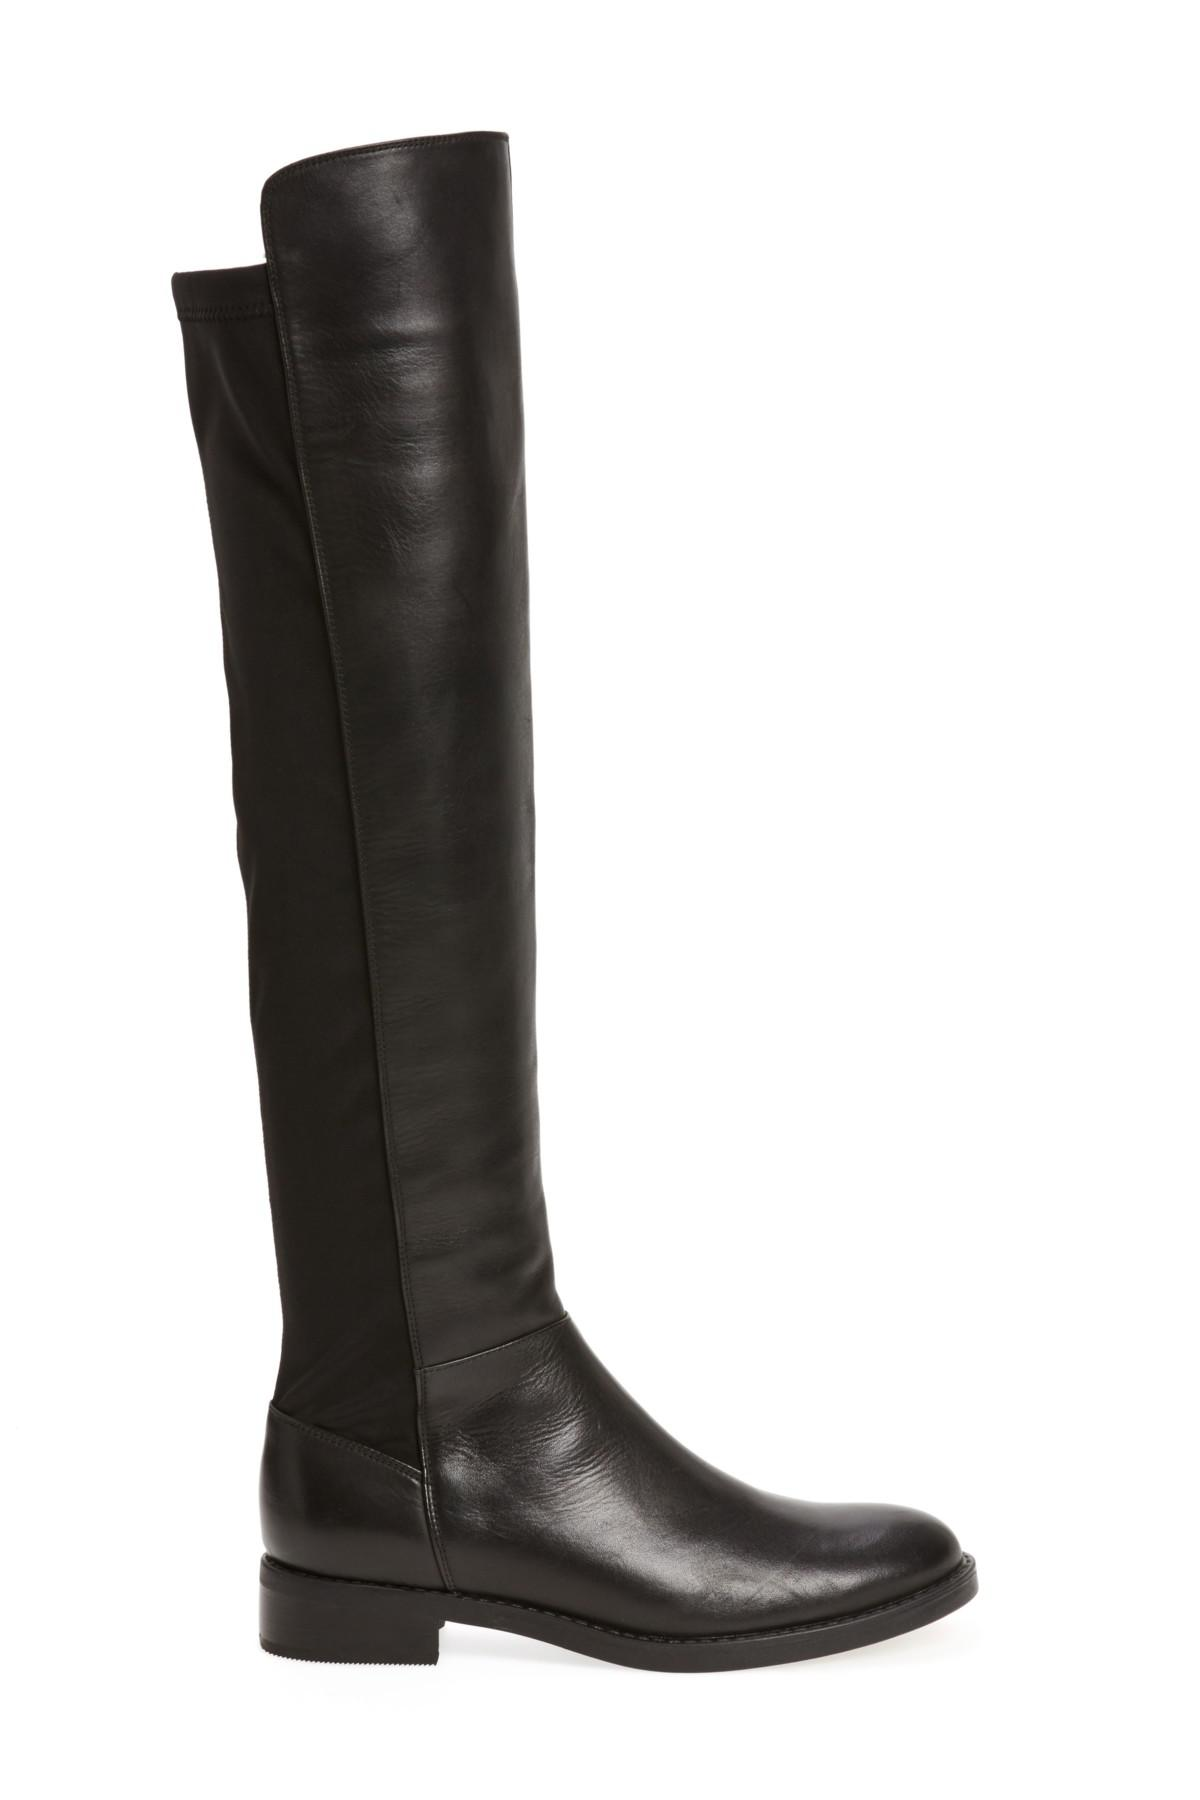 0a0cac416fb Blondo Olivia Knee High Boot in Black - Lyst